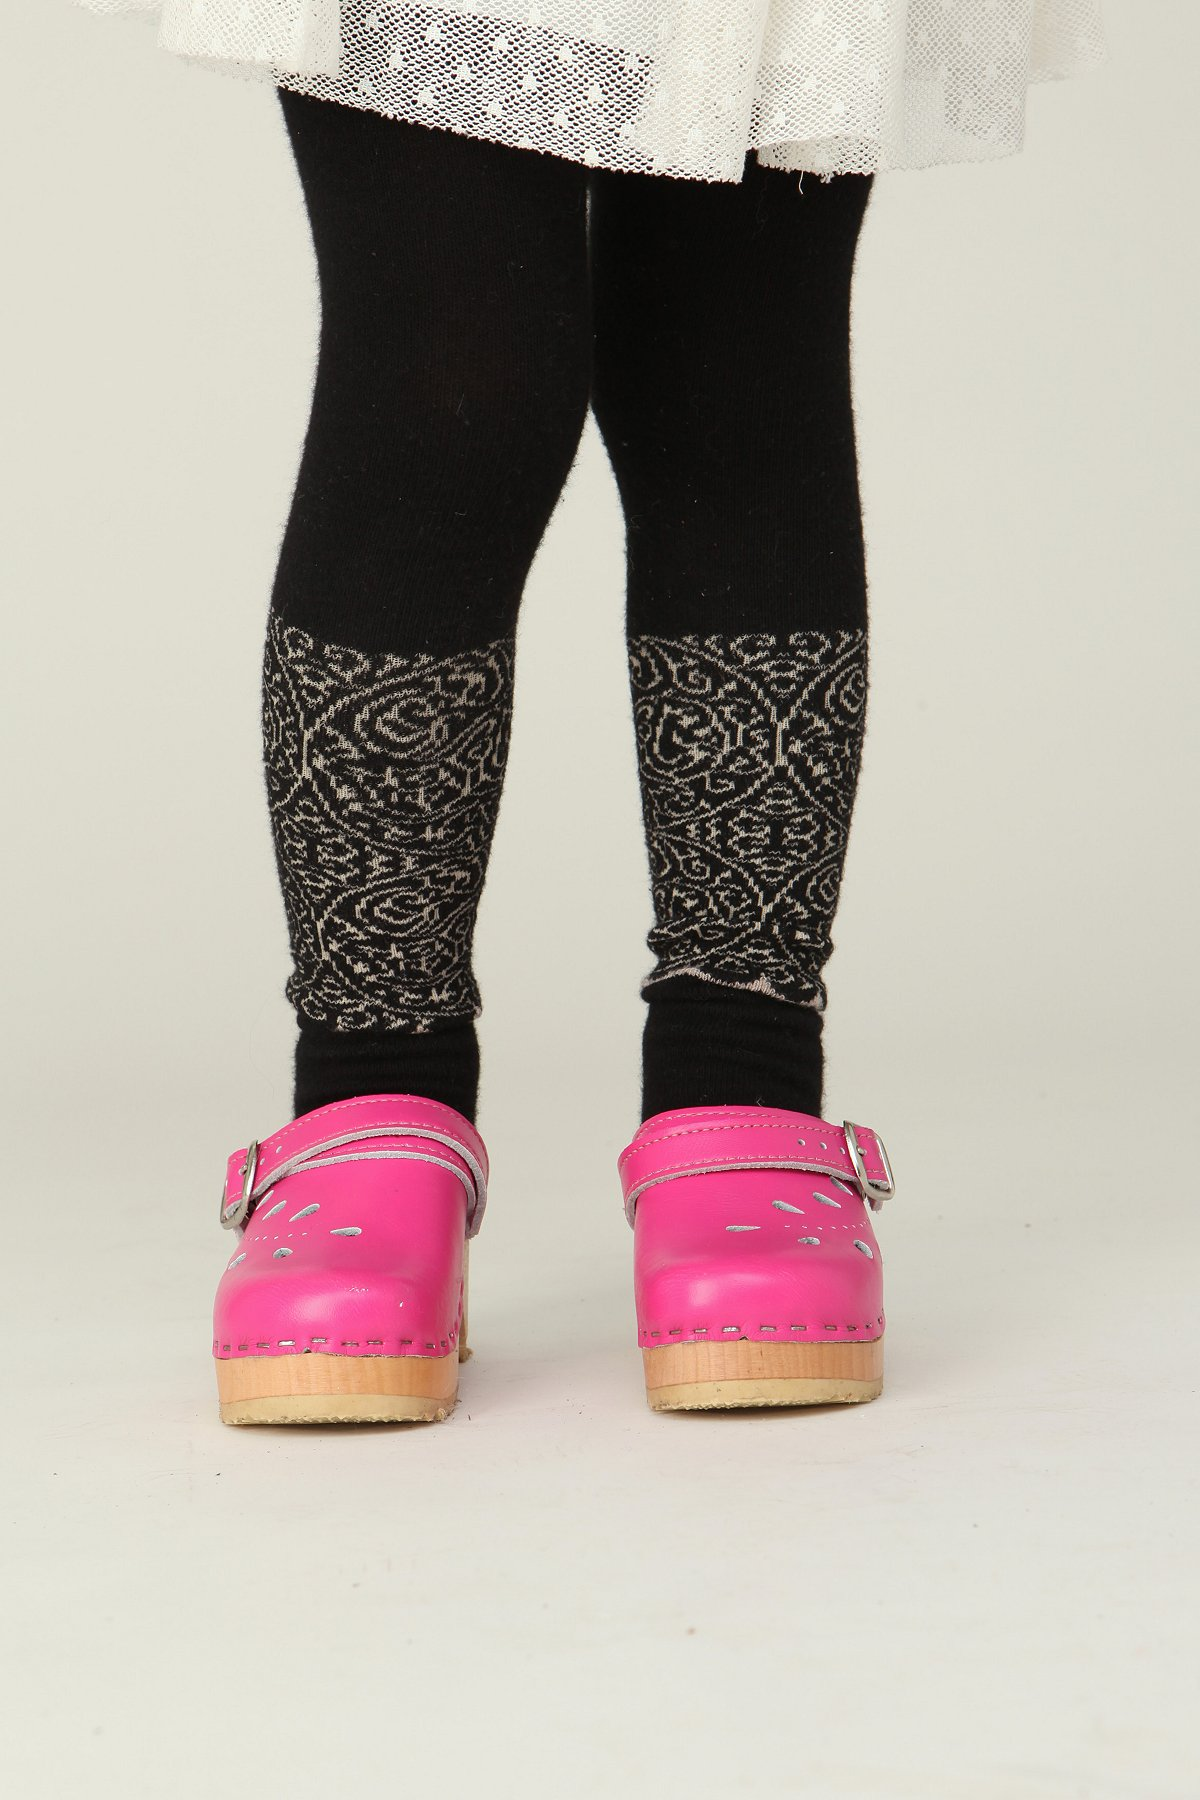 Wee People Mythique Tights